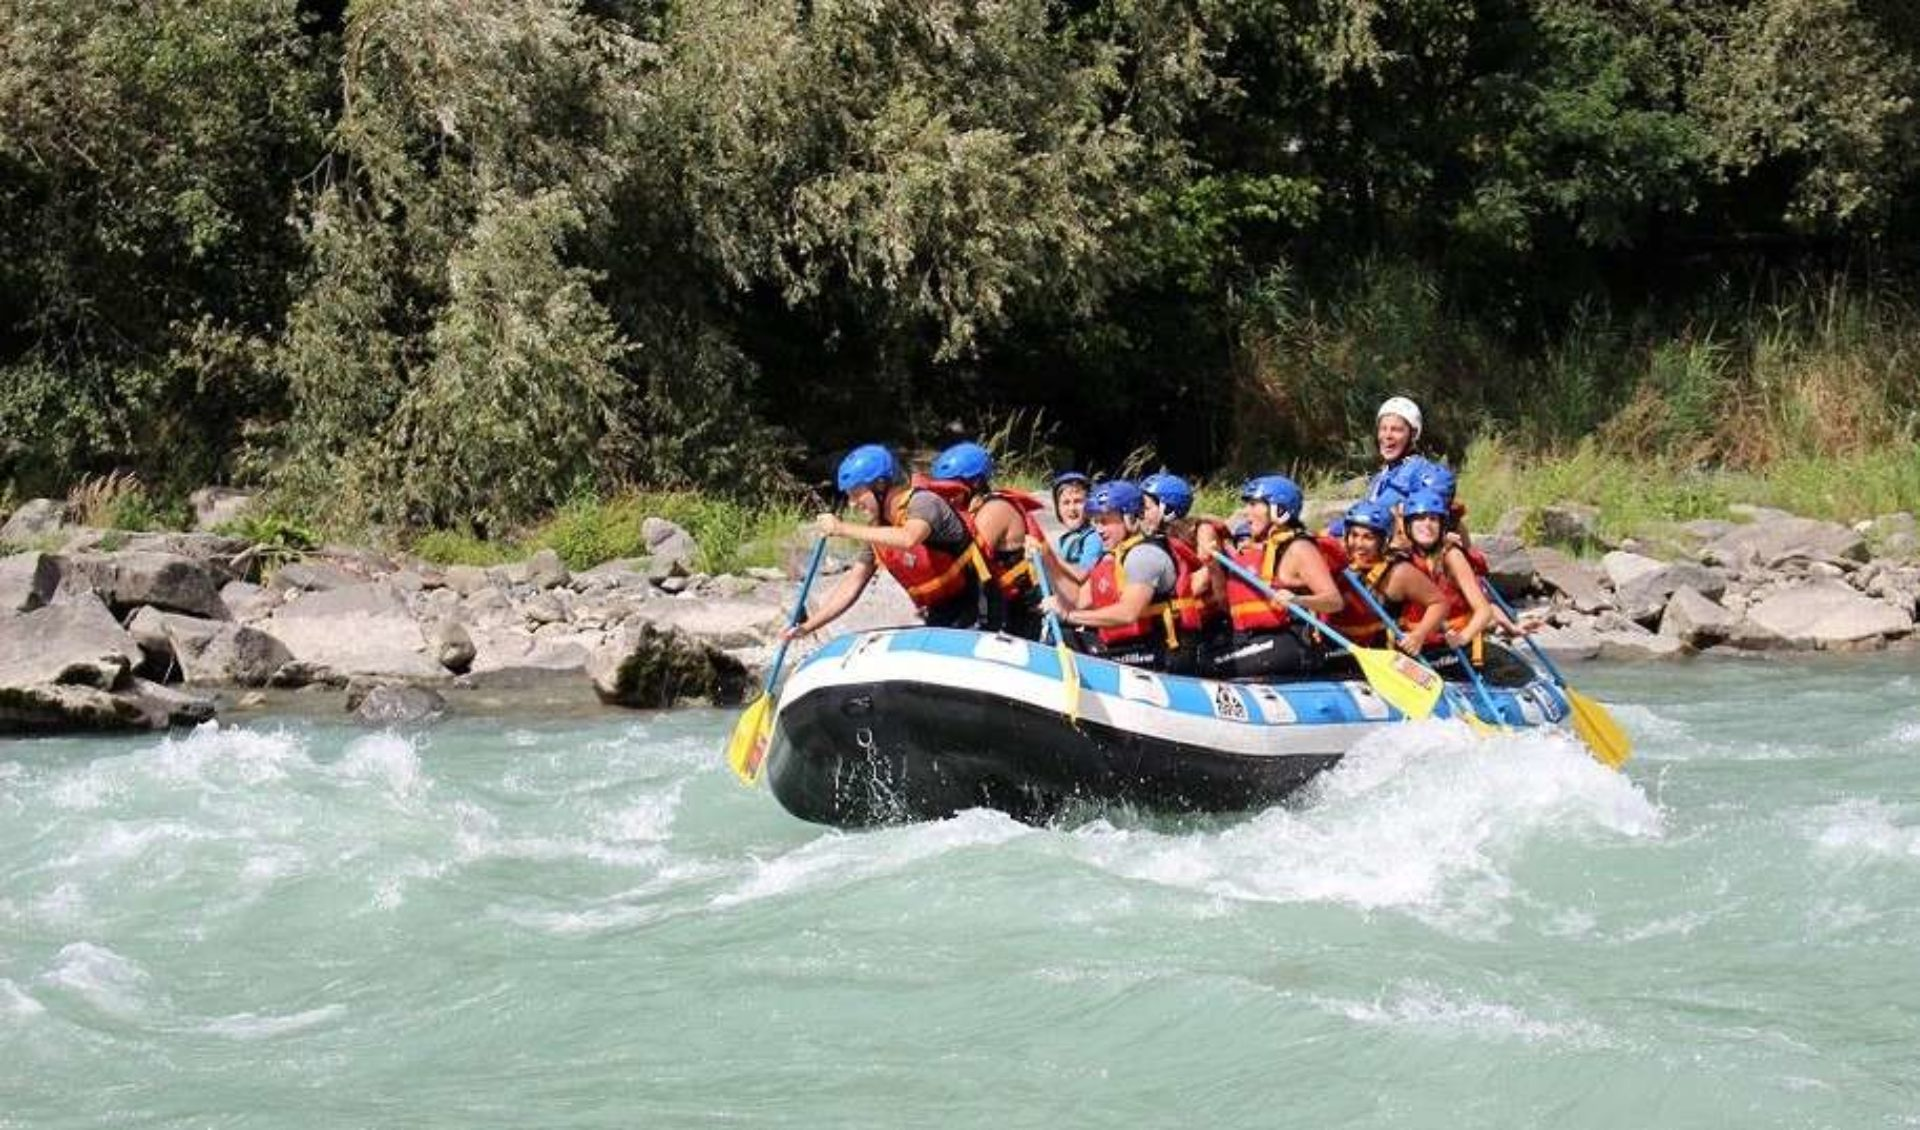 Rafting Castione Andevenno